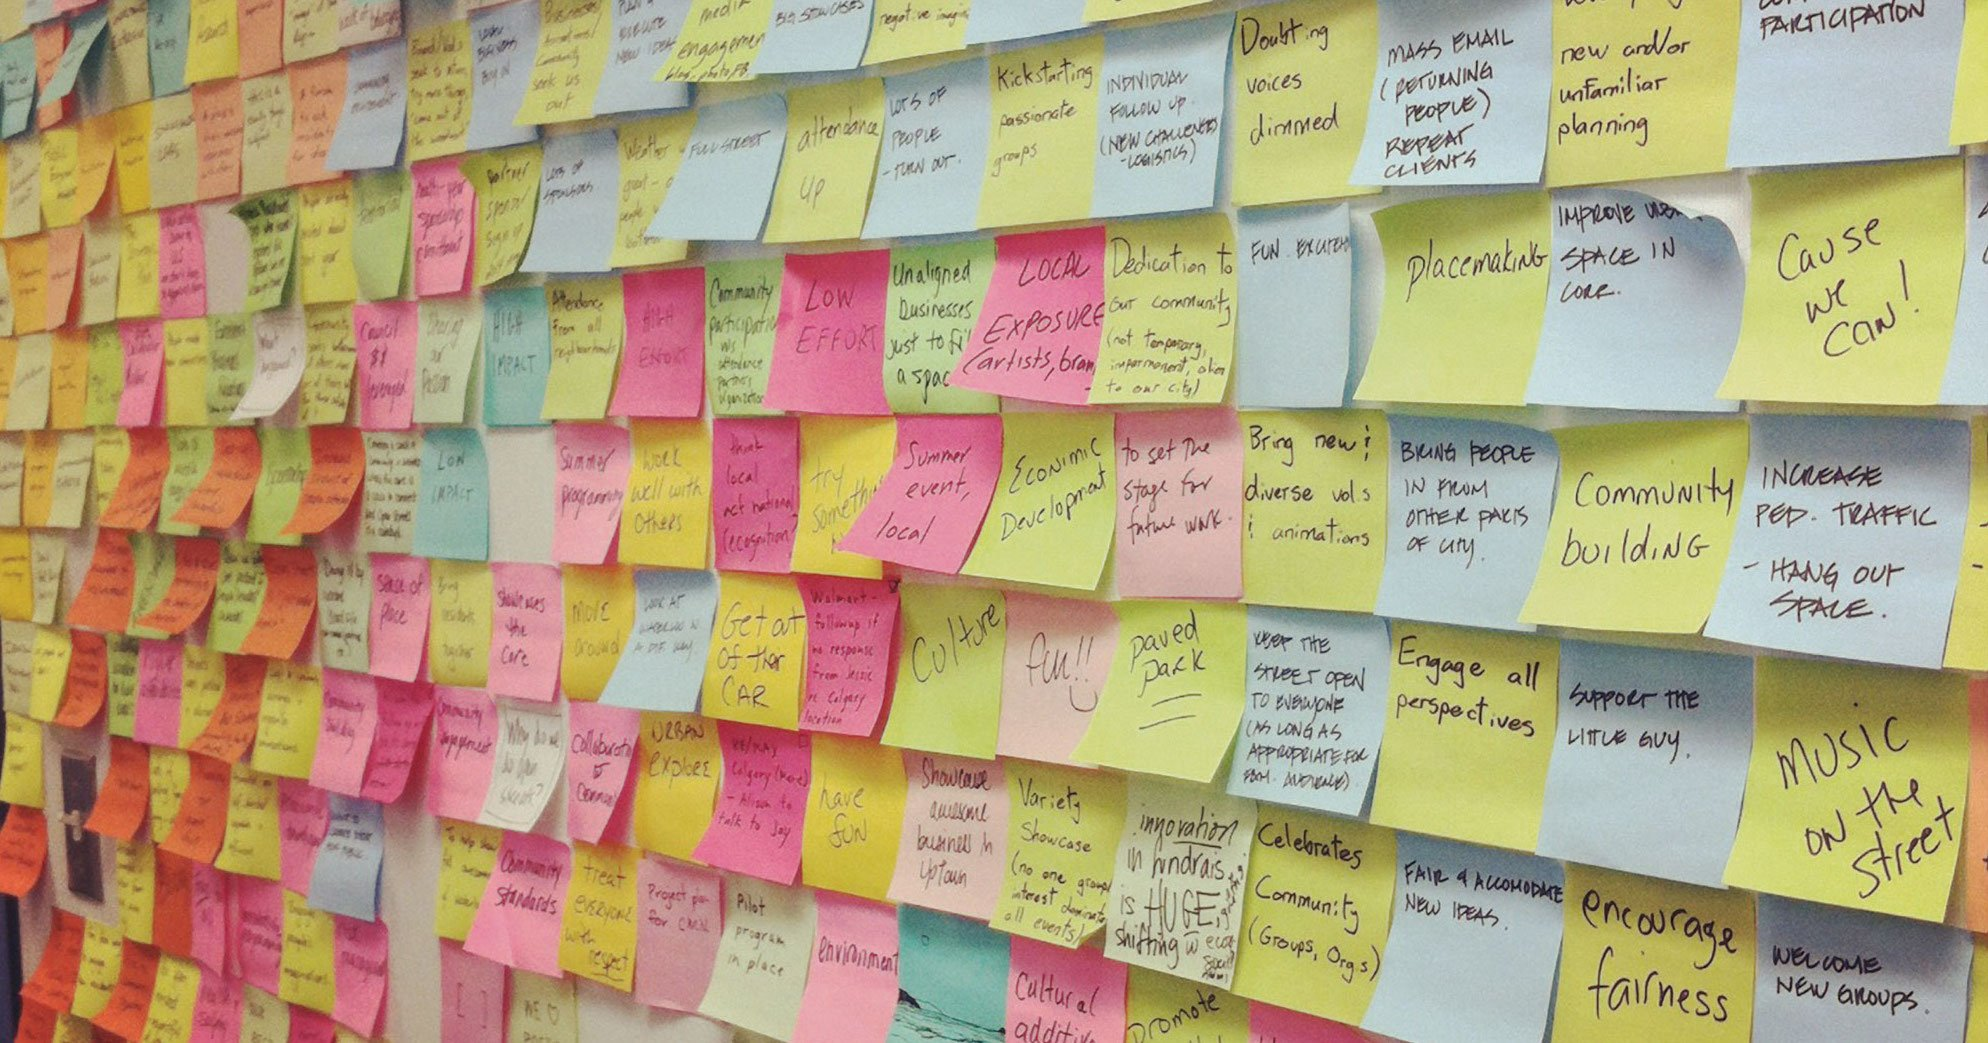 Overlap stickynote wall.jpg